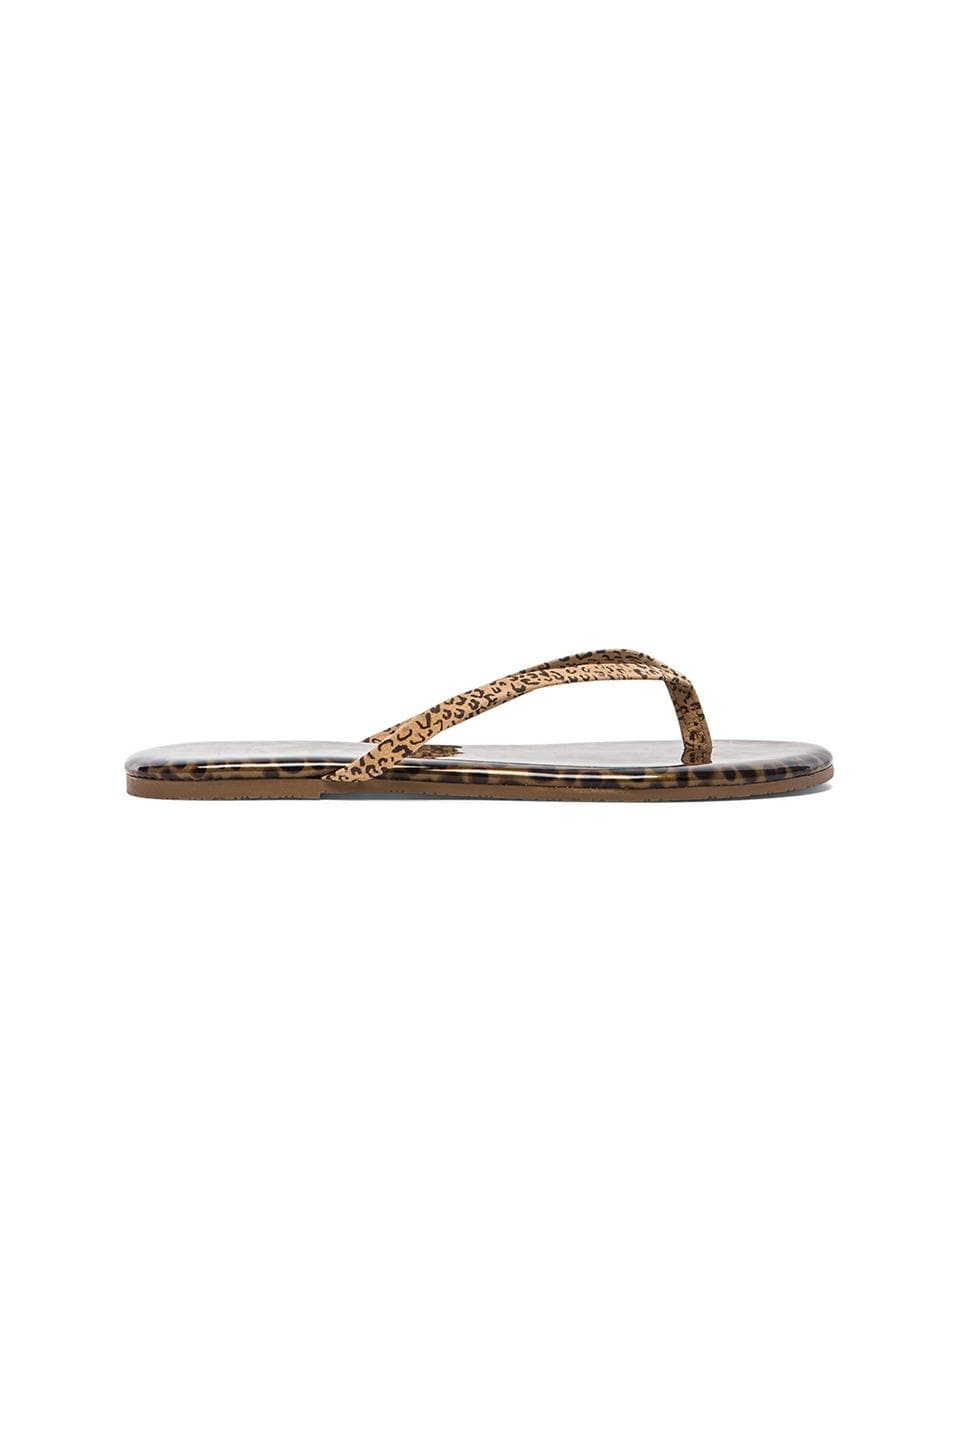 TKEES Sandal in Chatty Cheetah